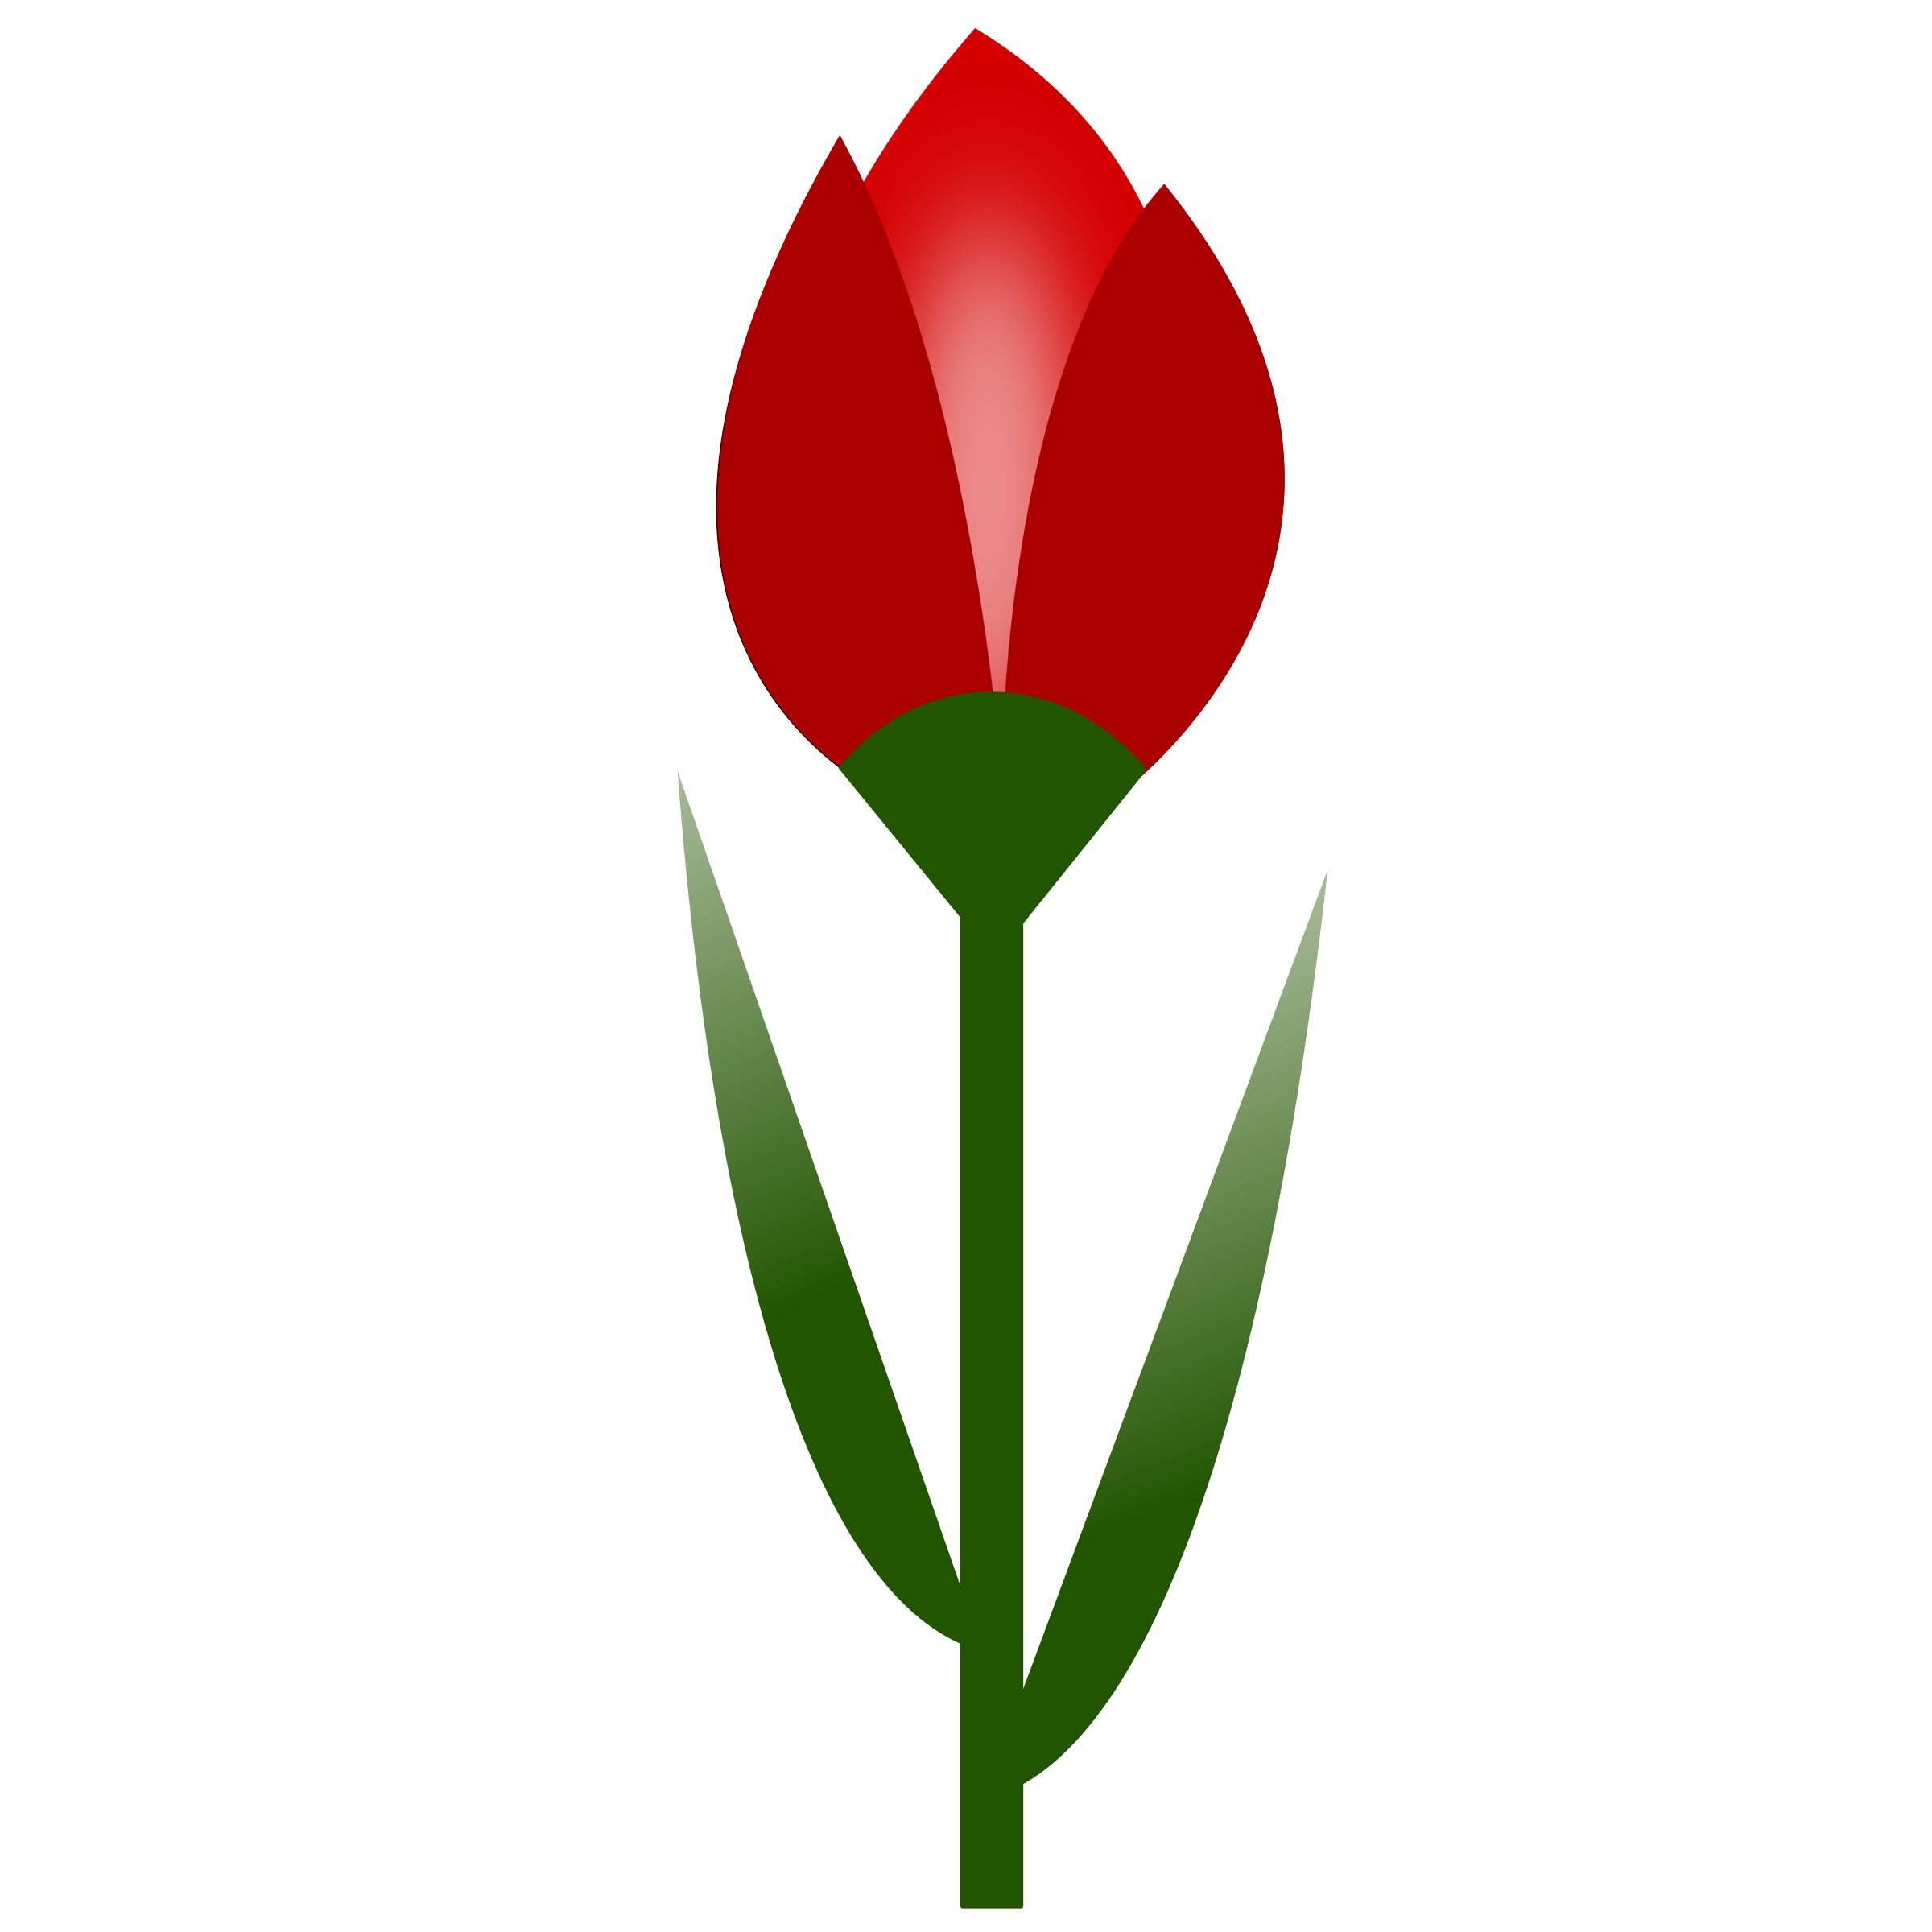 TULIP Simple Red Flower- 3-color- with slight glow by oldifluff